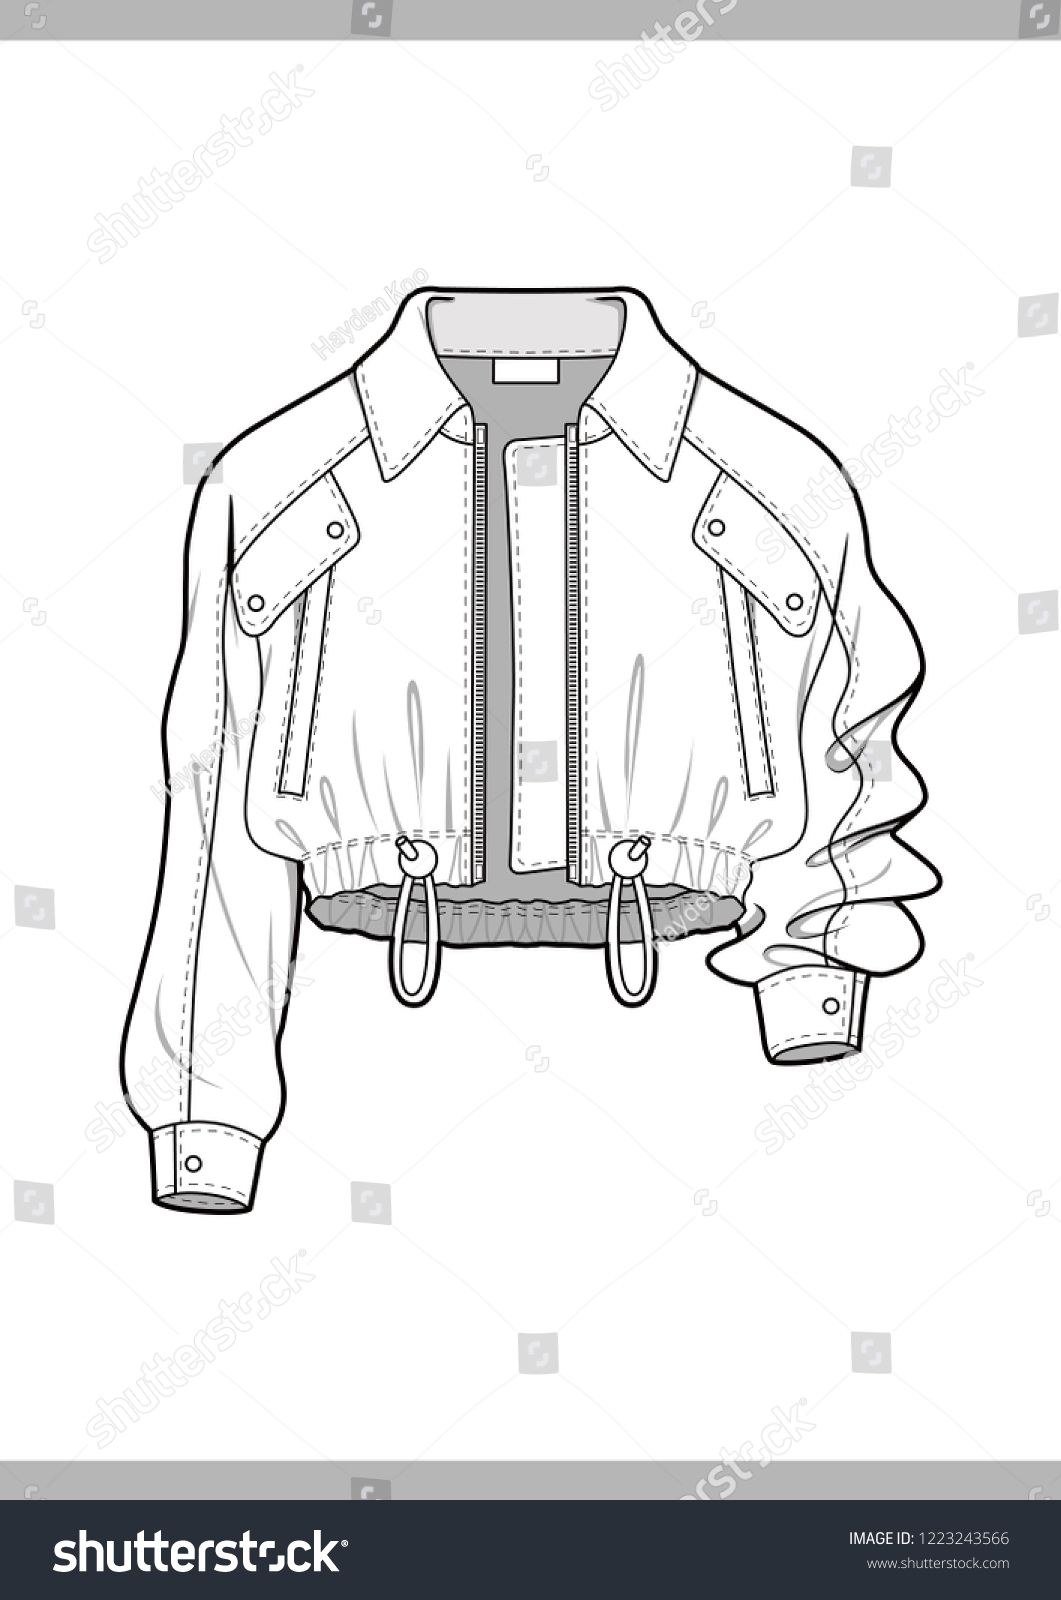 Photo of Outer Fashion Technical Drawings Flat Sketches Stock Vector (Royalty Free) 1223243566